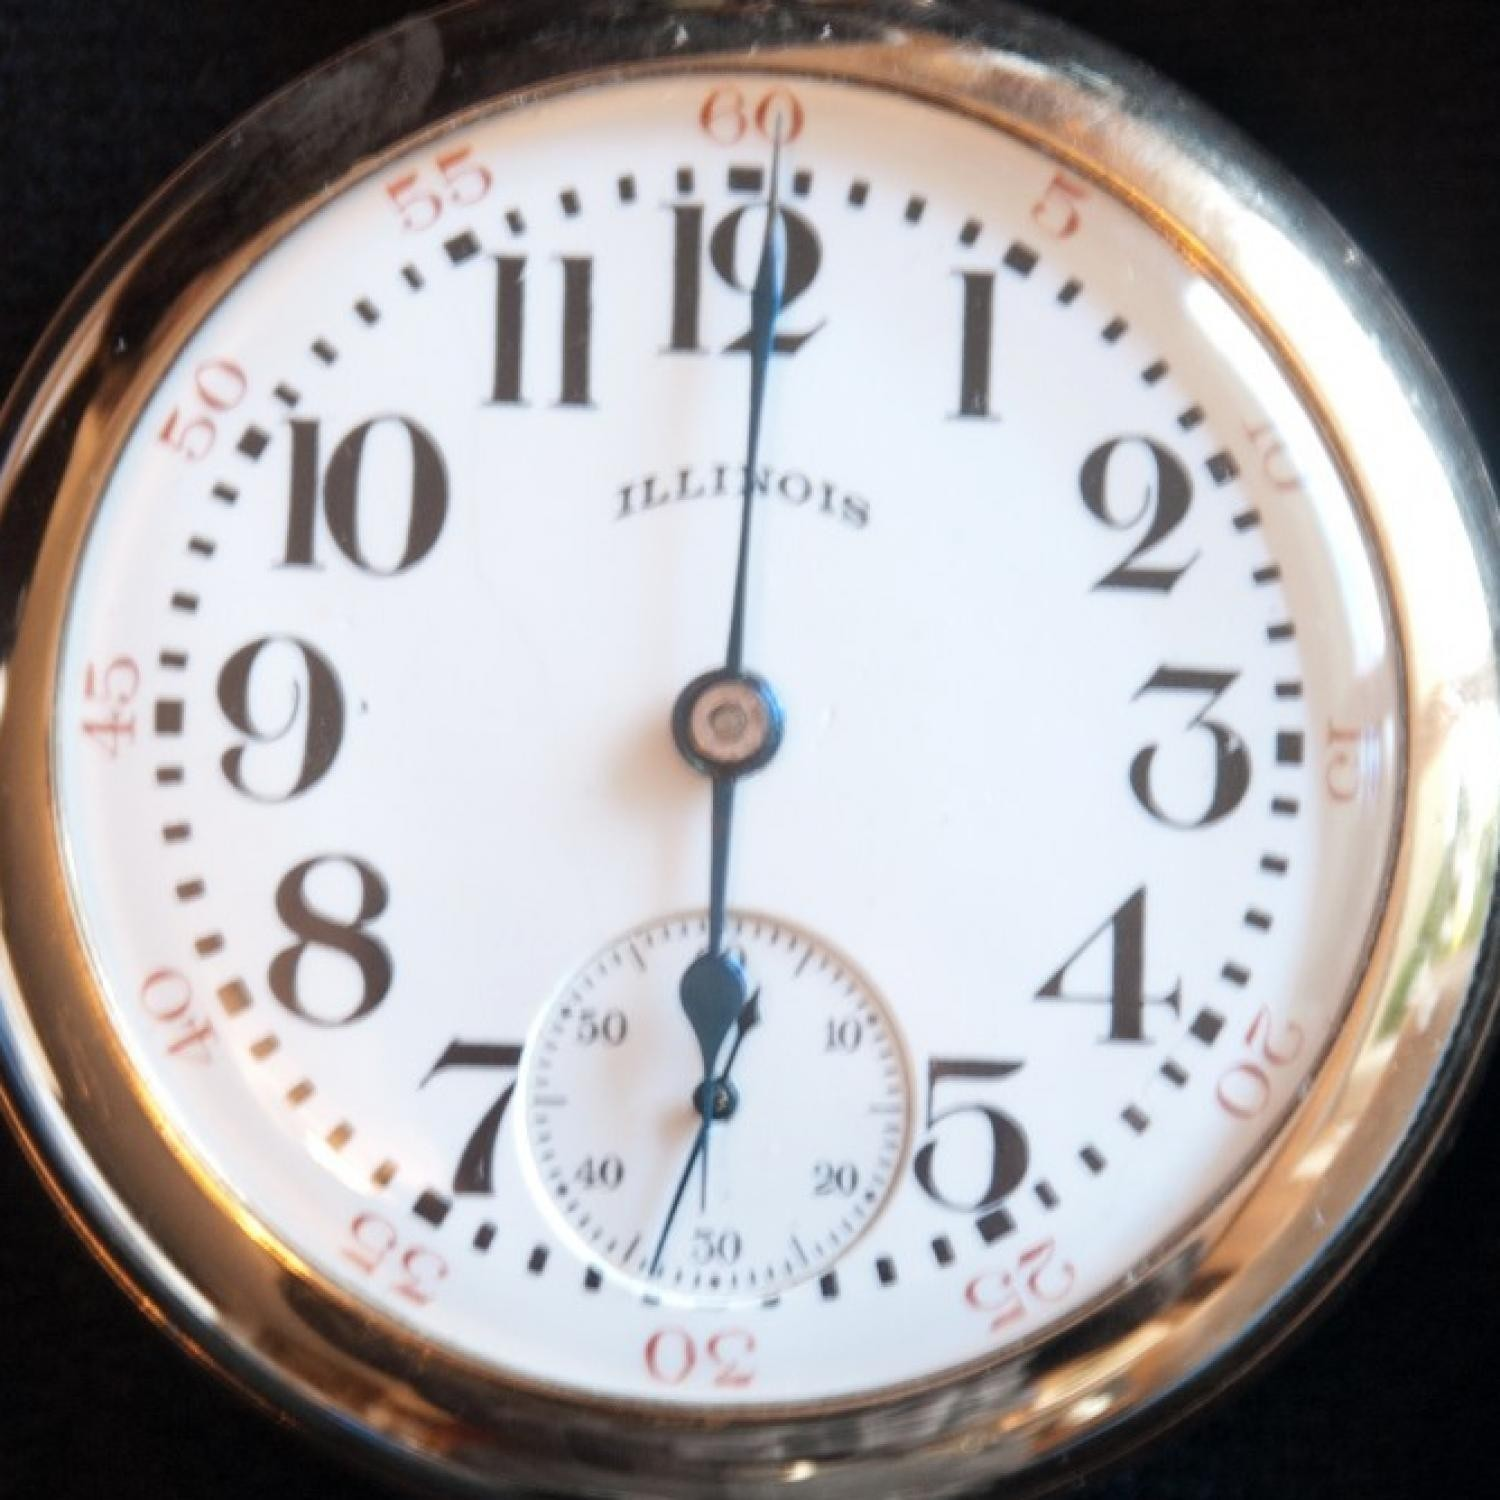 Image of Illinois 69 #3199702 Dial